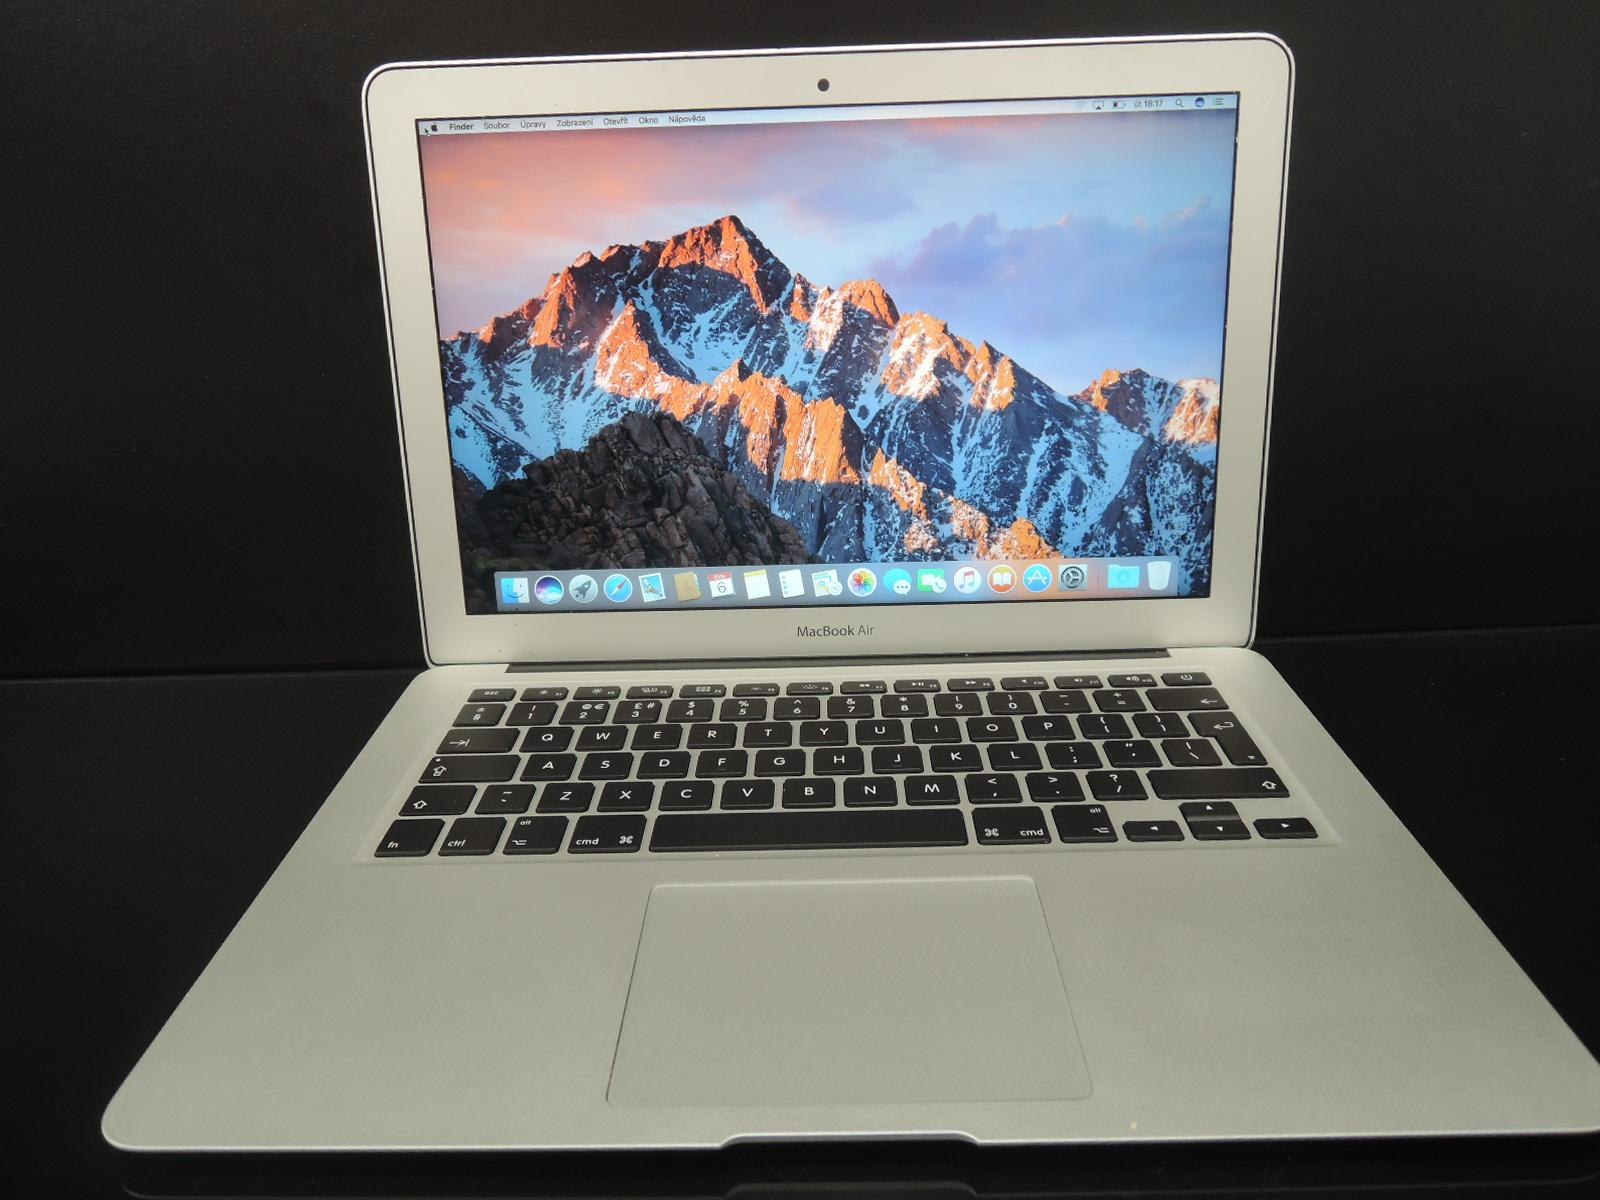 "MacBook AIR 13.3"" CTO/i7 2.0GHz/4GB RAM/256GB SSD"